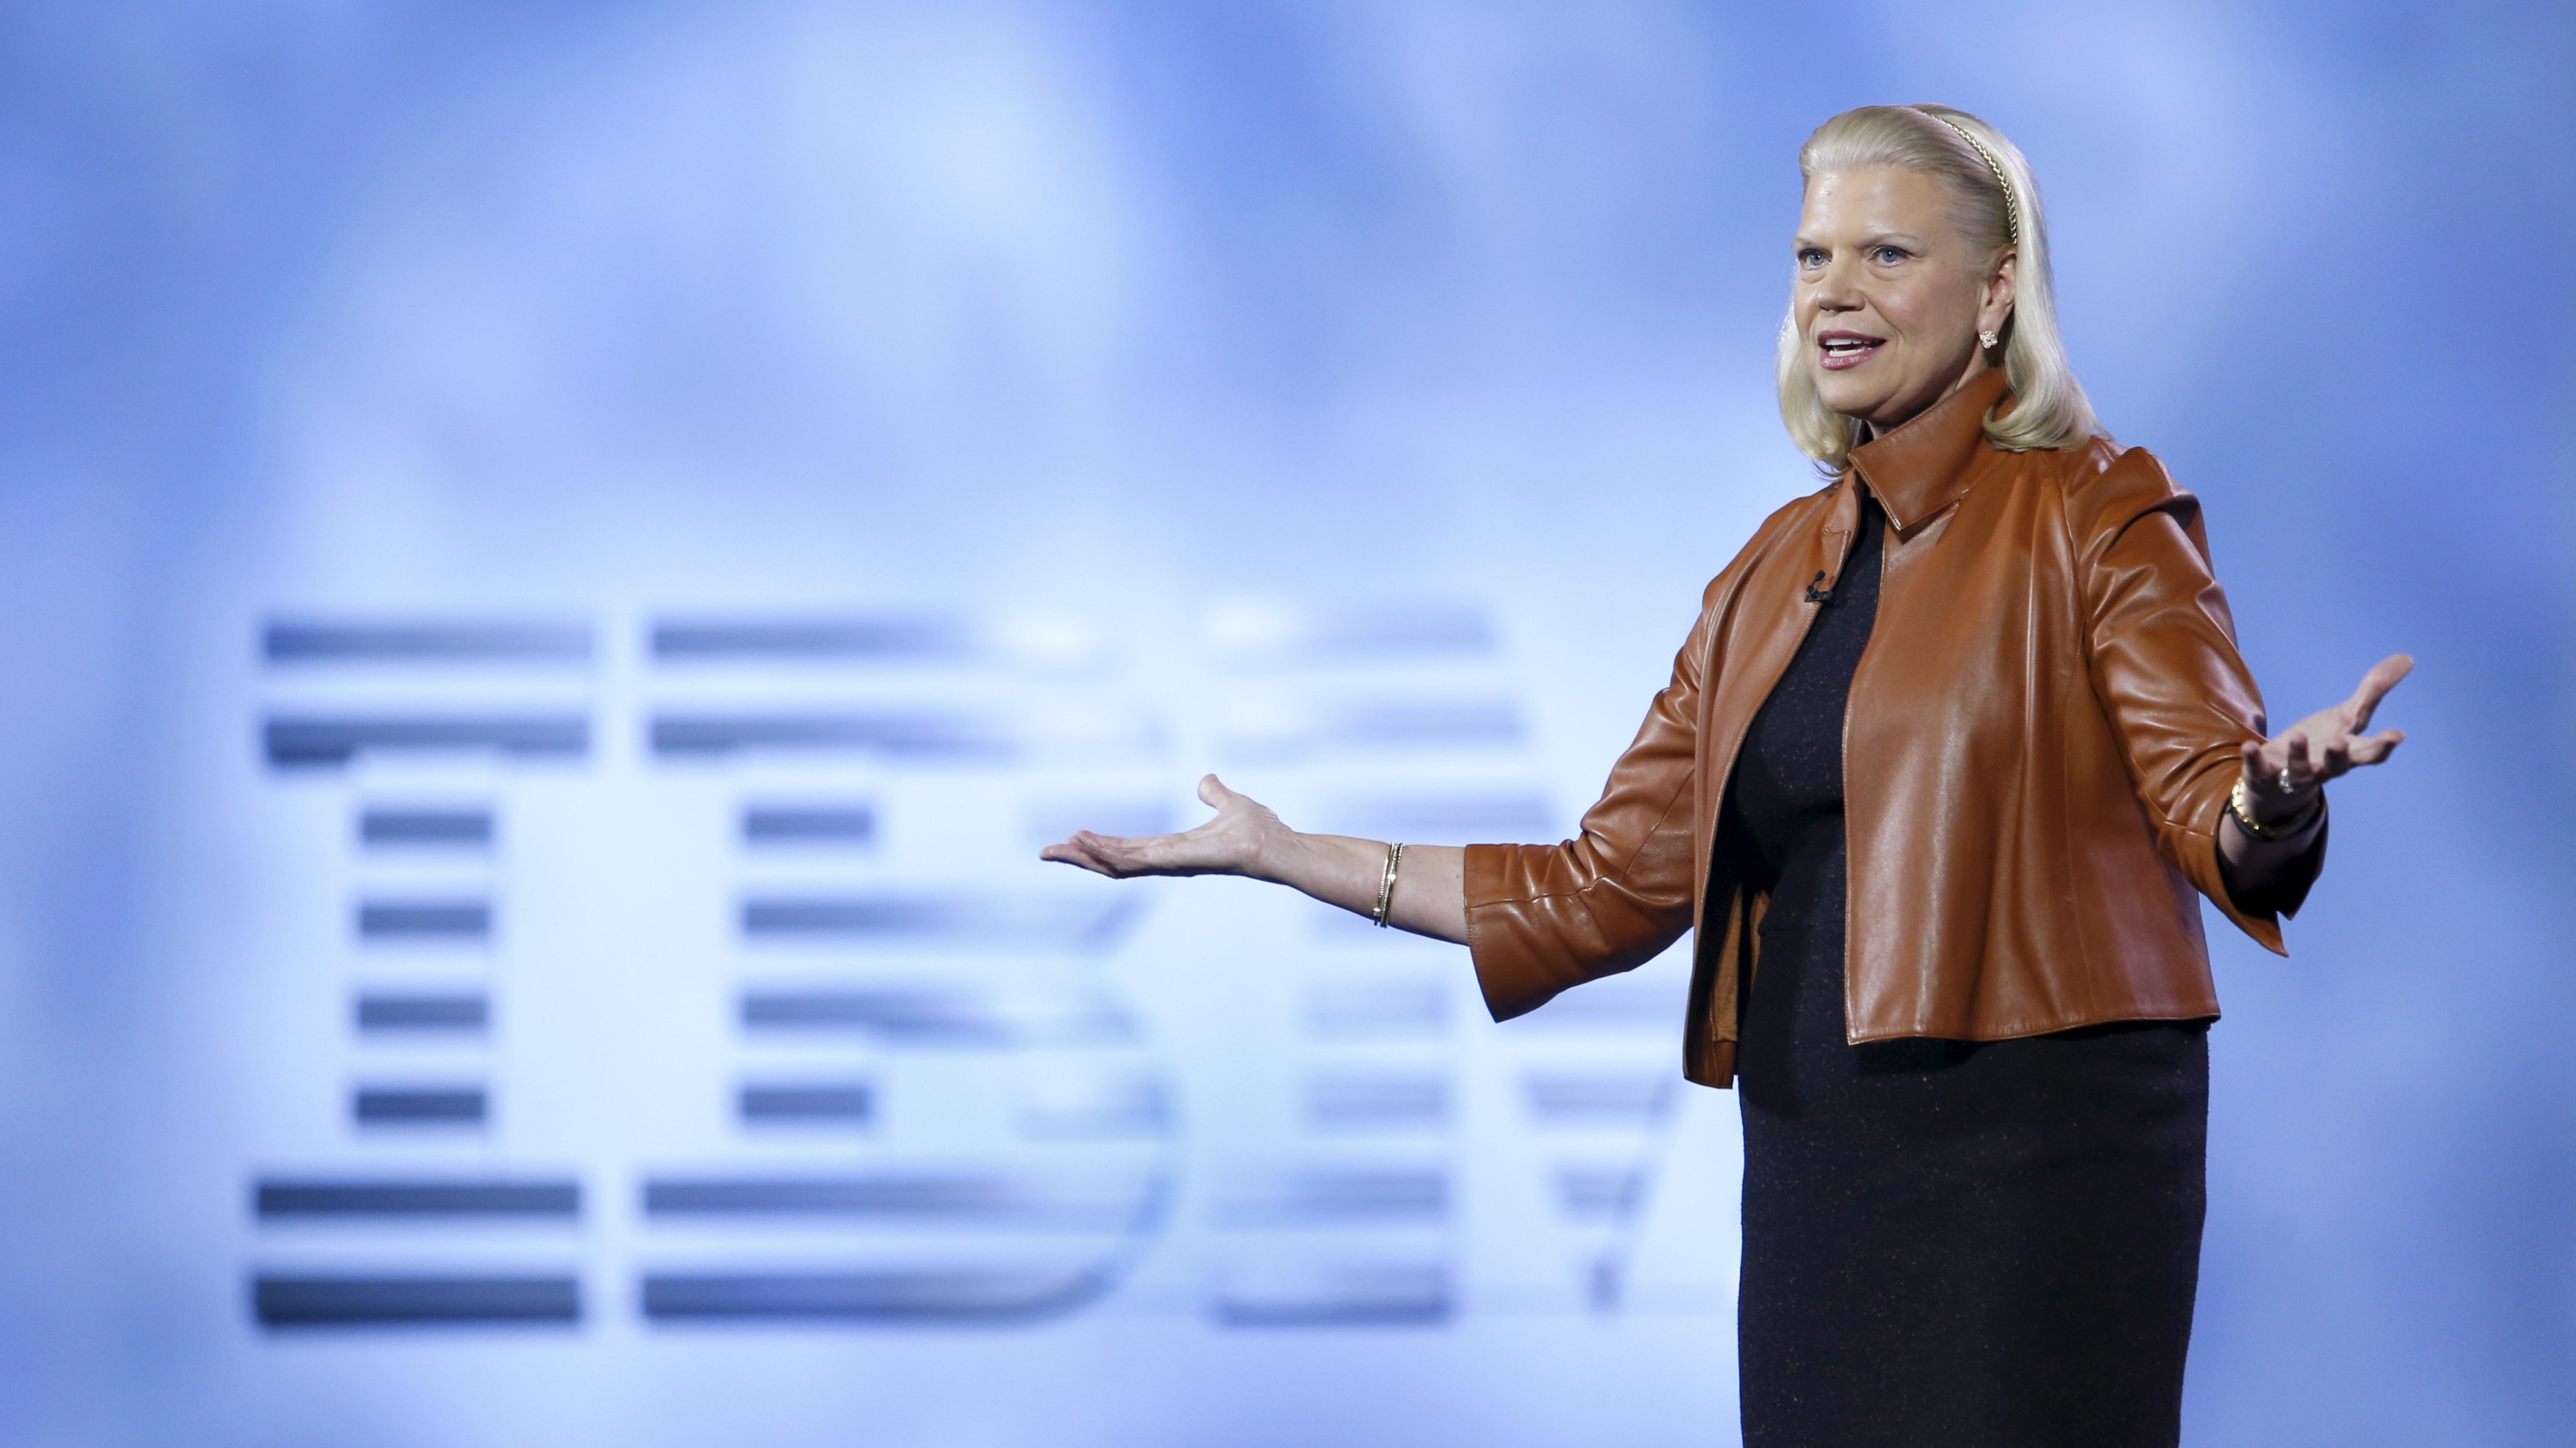 Ginni Rometty, chairman, president and CEO of IBM, speaks during a keynote address at the 2016 CES trade show in Las Vegas, Nevada, January 6, 2016. REUTERS/Steve Marcus - RTX21CJ6